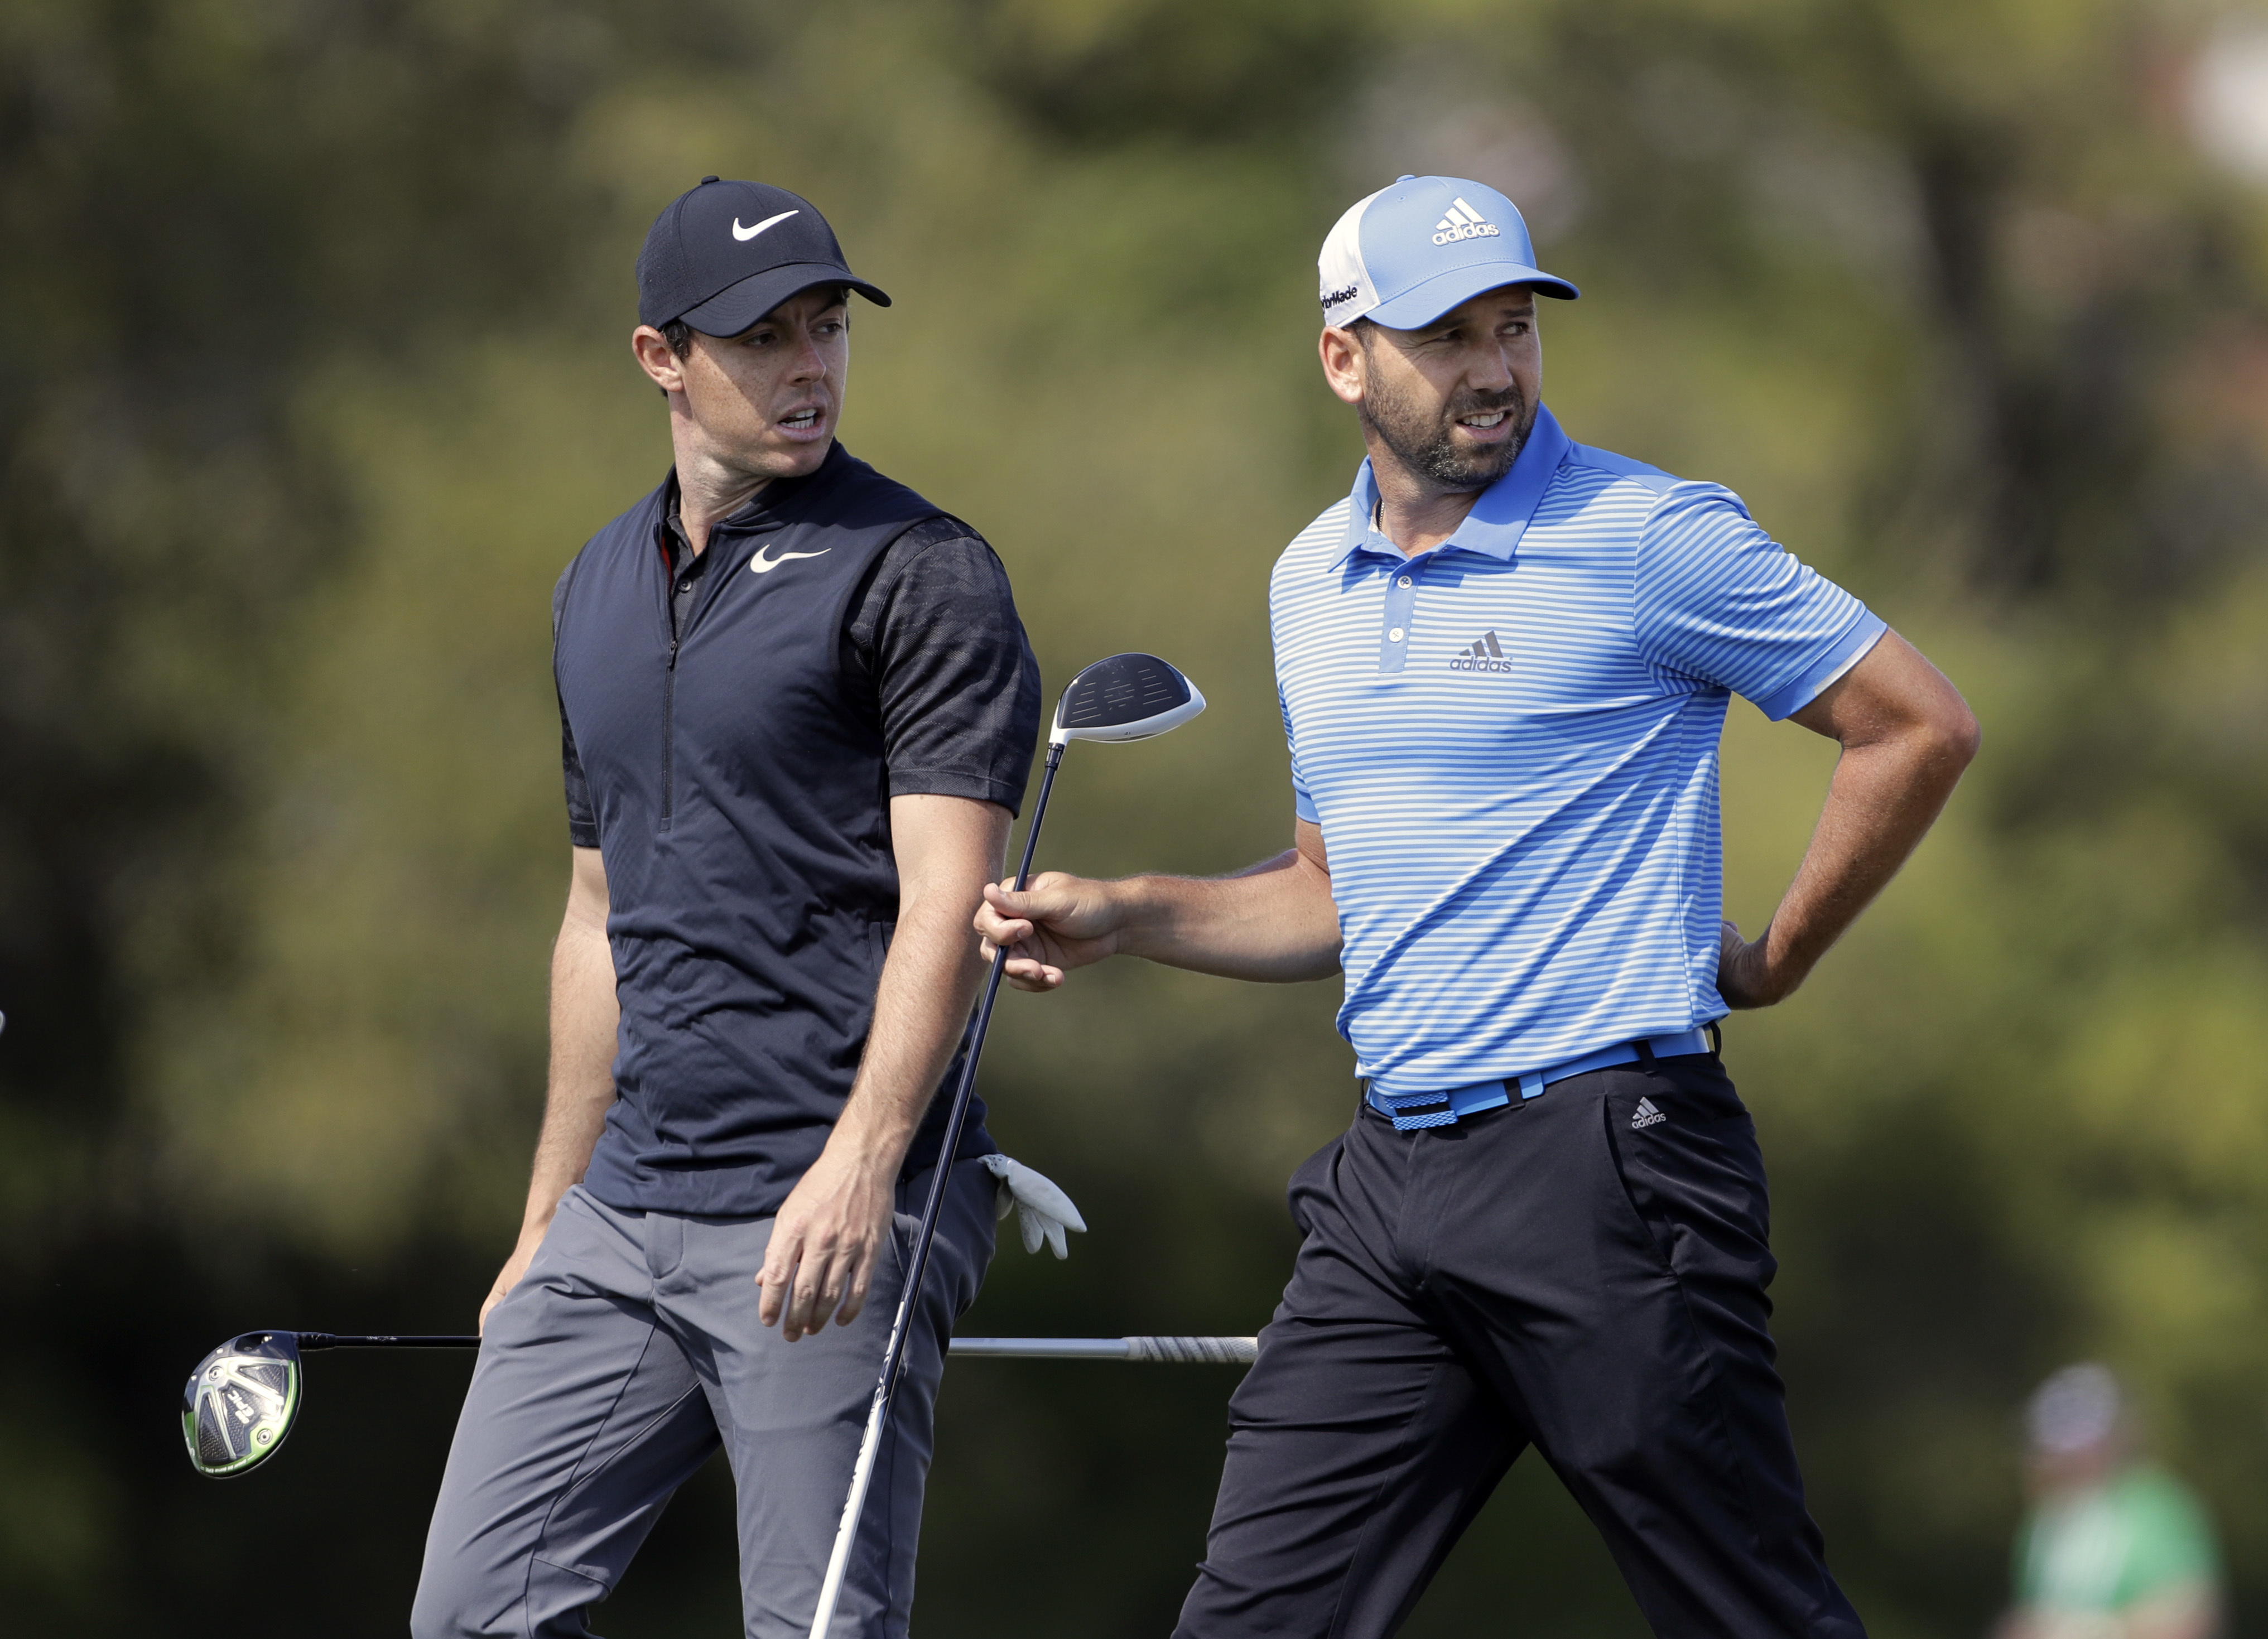 Rory McIlroy, of Northern Ireland, left, and Sergio Garcia, of Spain, walk off the 16th tee during a practice round for the Dell Match Play Championship golf tournament at Austin County Club, Tuesday, March 21, 2017, in Austin, Texas. (AP Photo/Eric Gay)